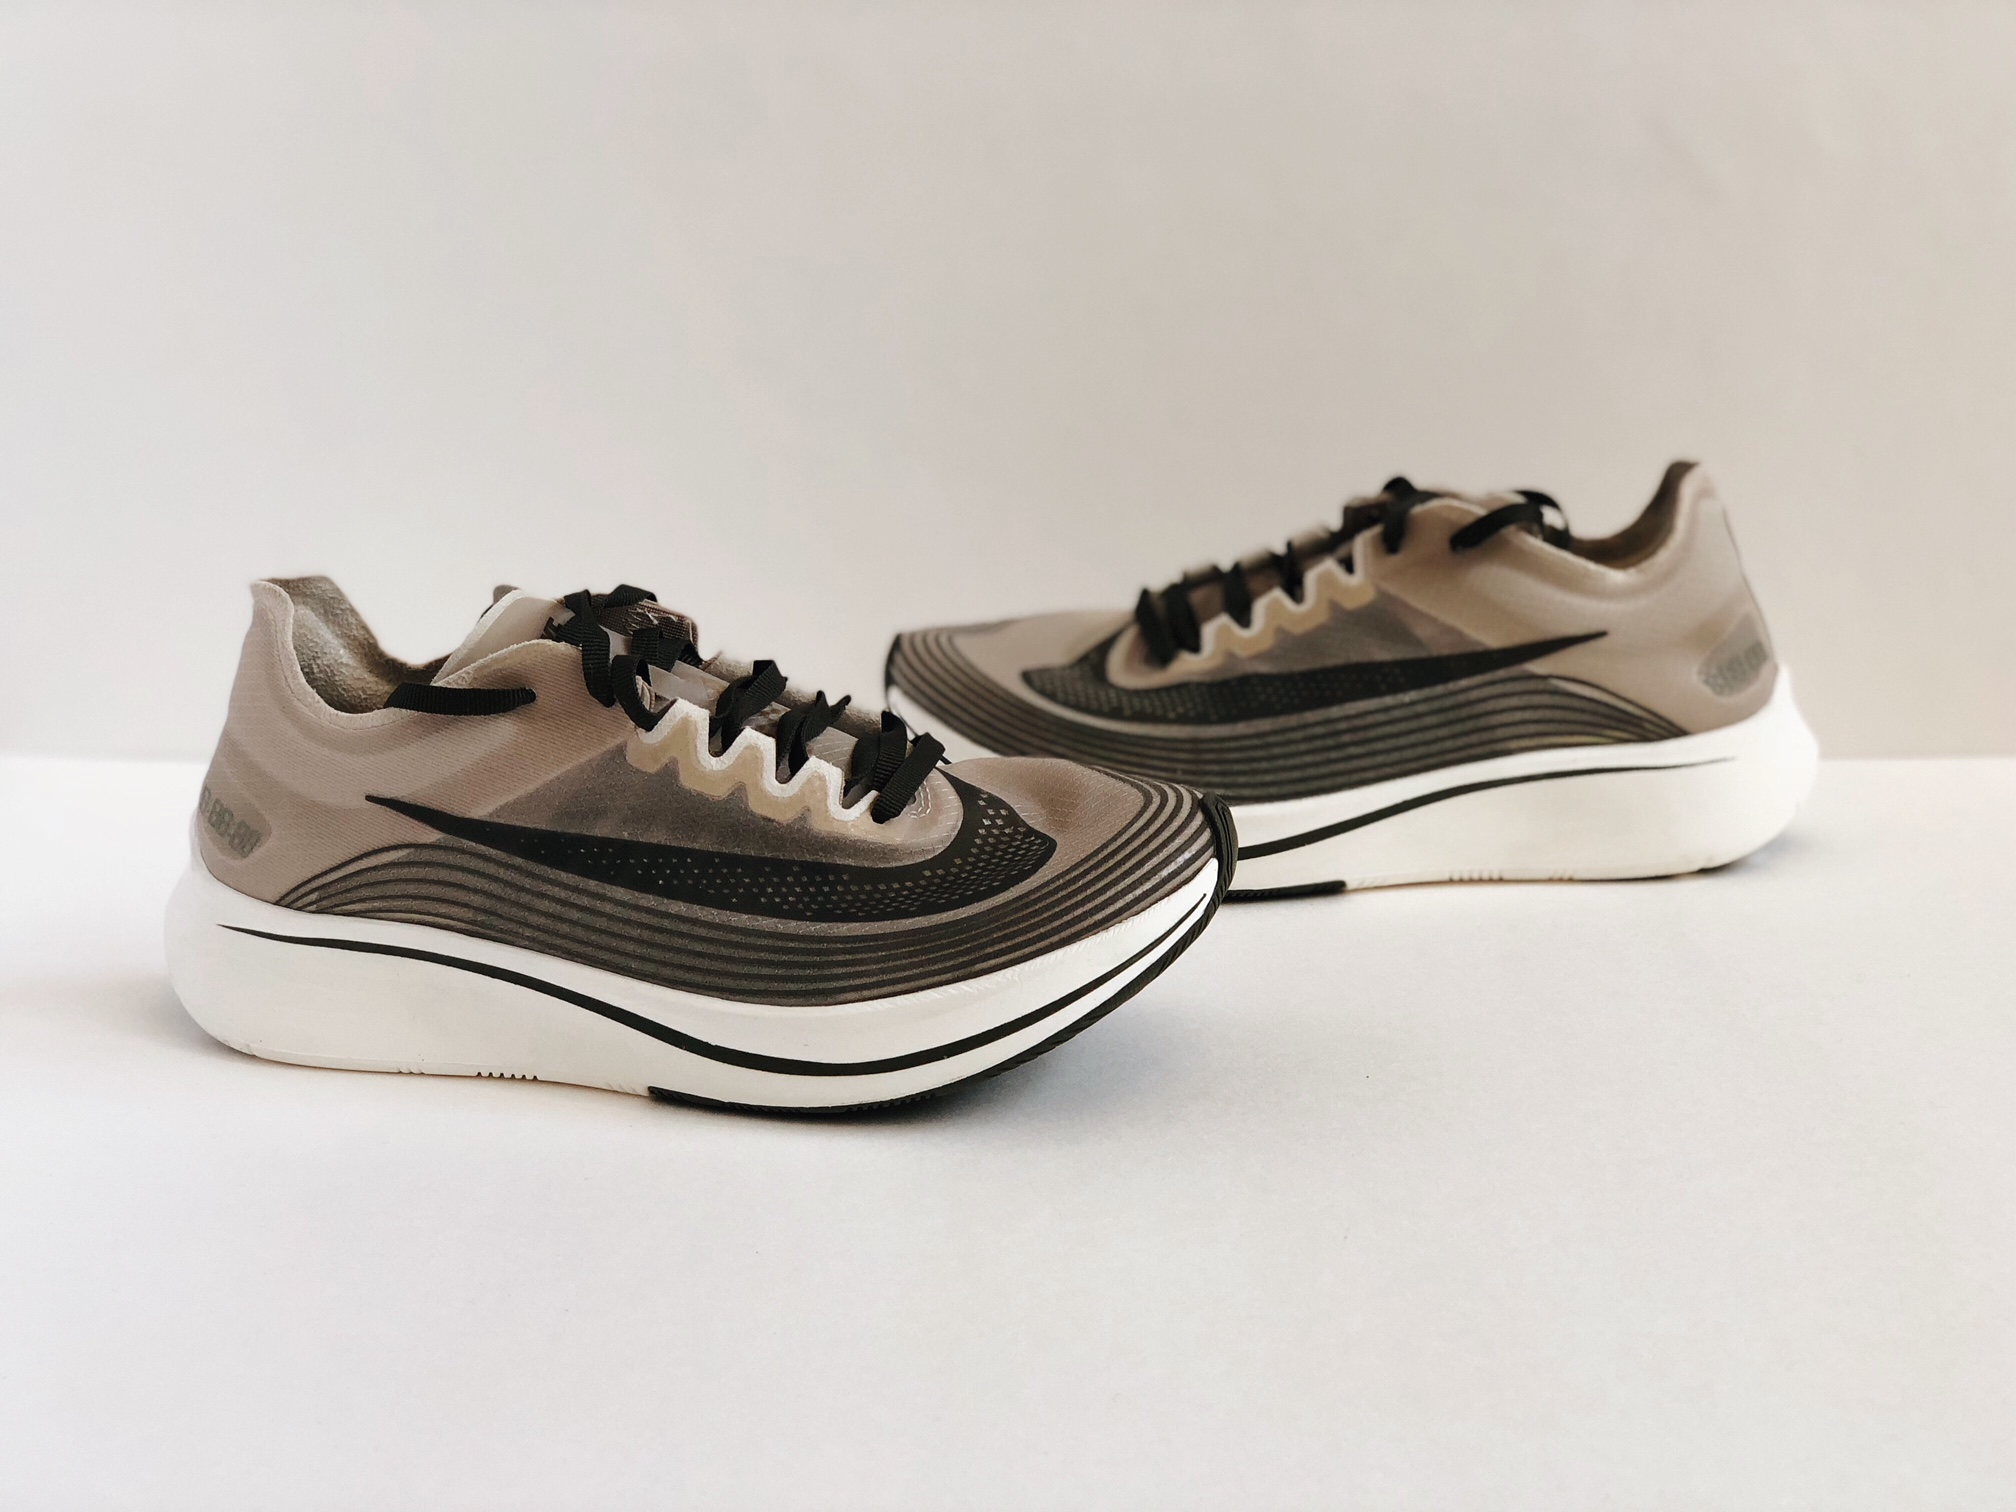 a5b50ca7be25 Nike. NIKE ZOOM FLY SP SHANGHAI  SZ 6   WMN 7.5  DARK LODEN STUCCO AA3172- 300